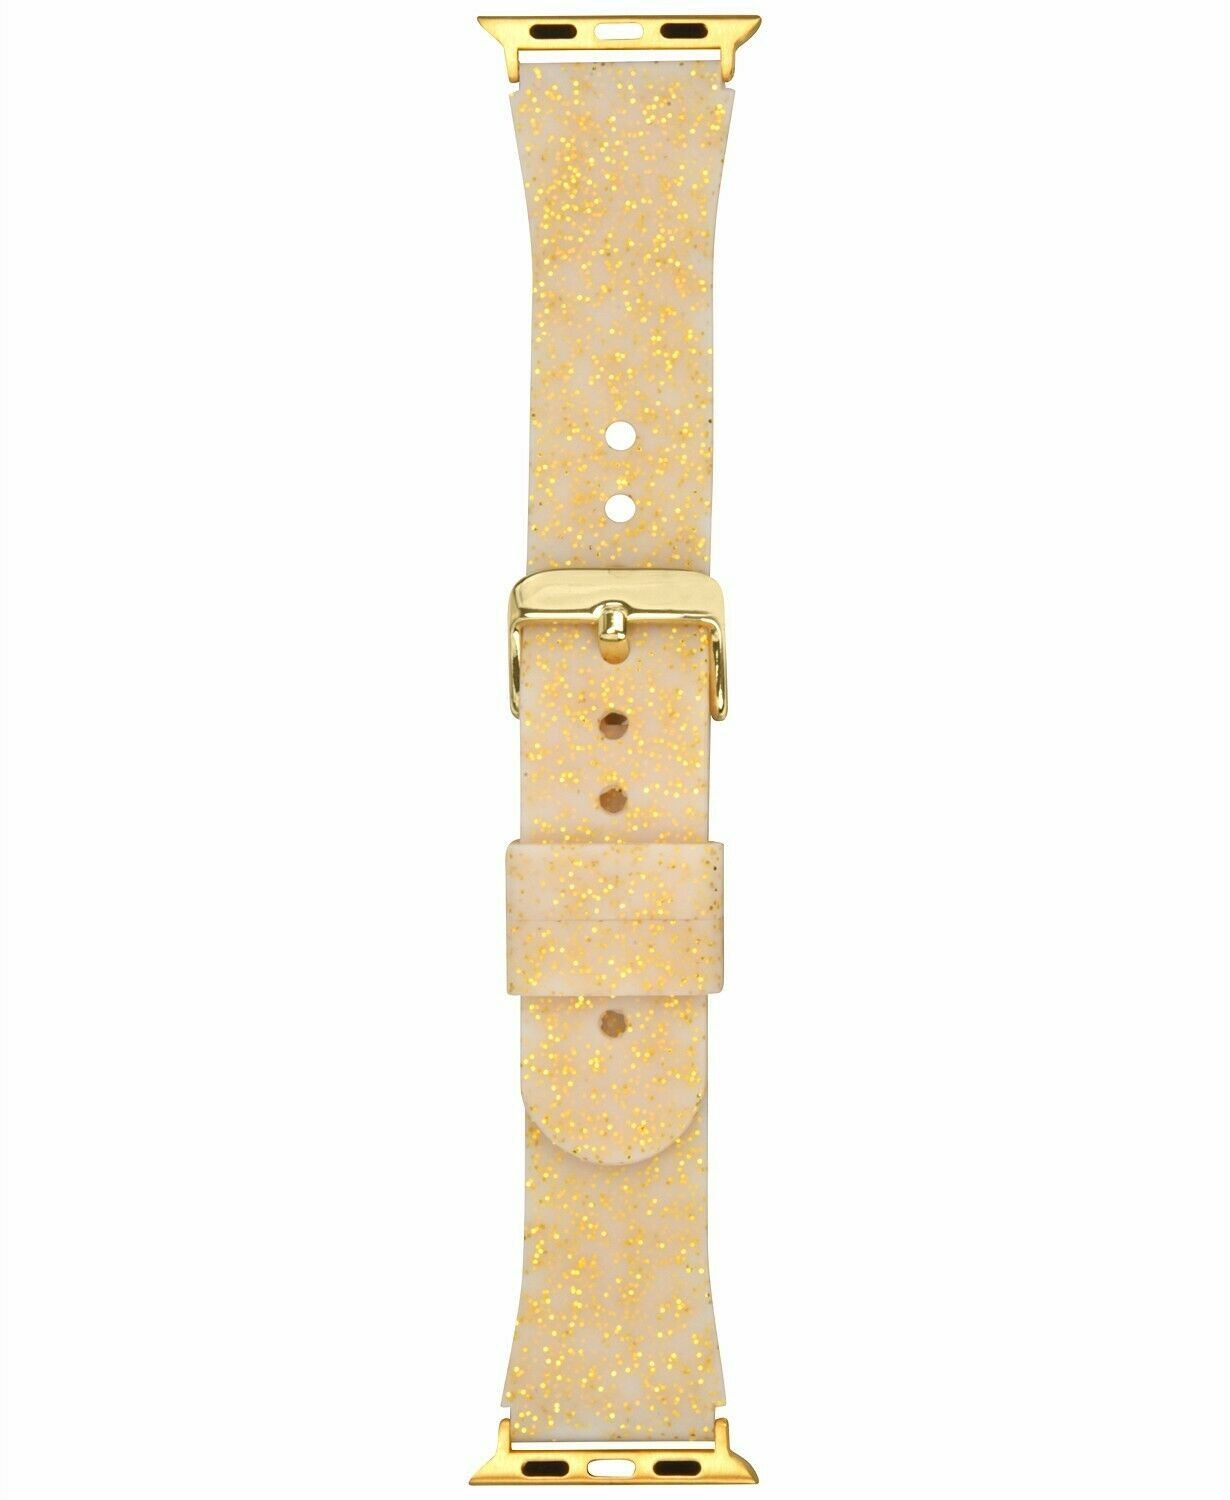 I.N.C. Women's Metallic Gold Tone Glitter Silicone 42mm Apple Watch Band Strap